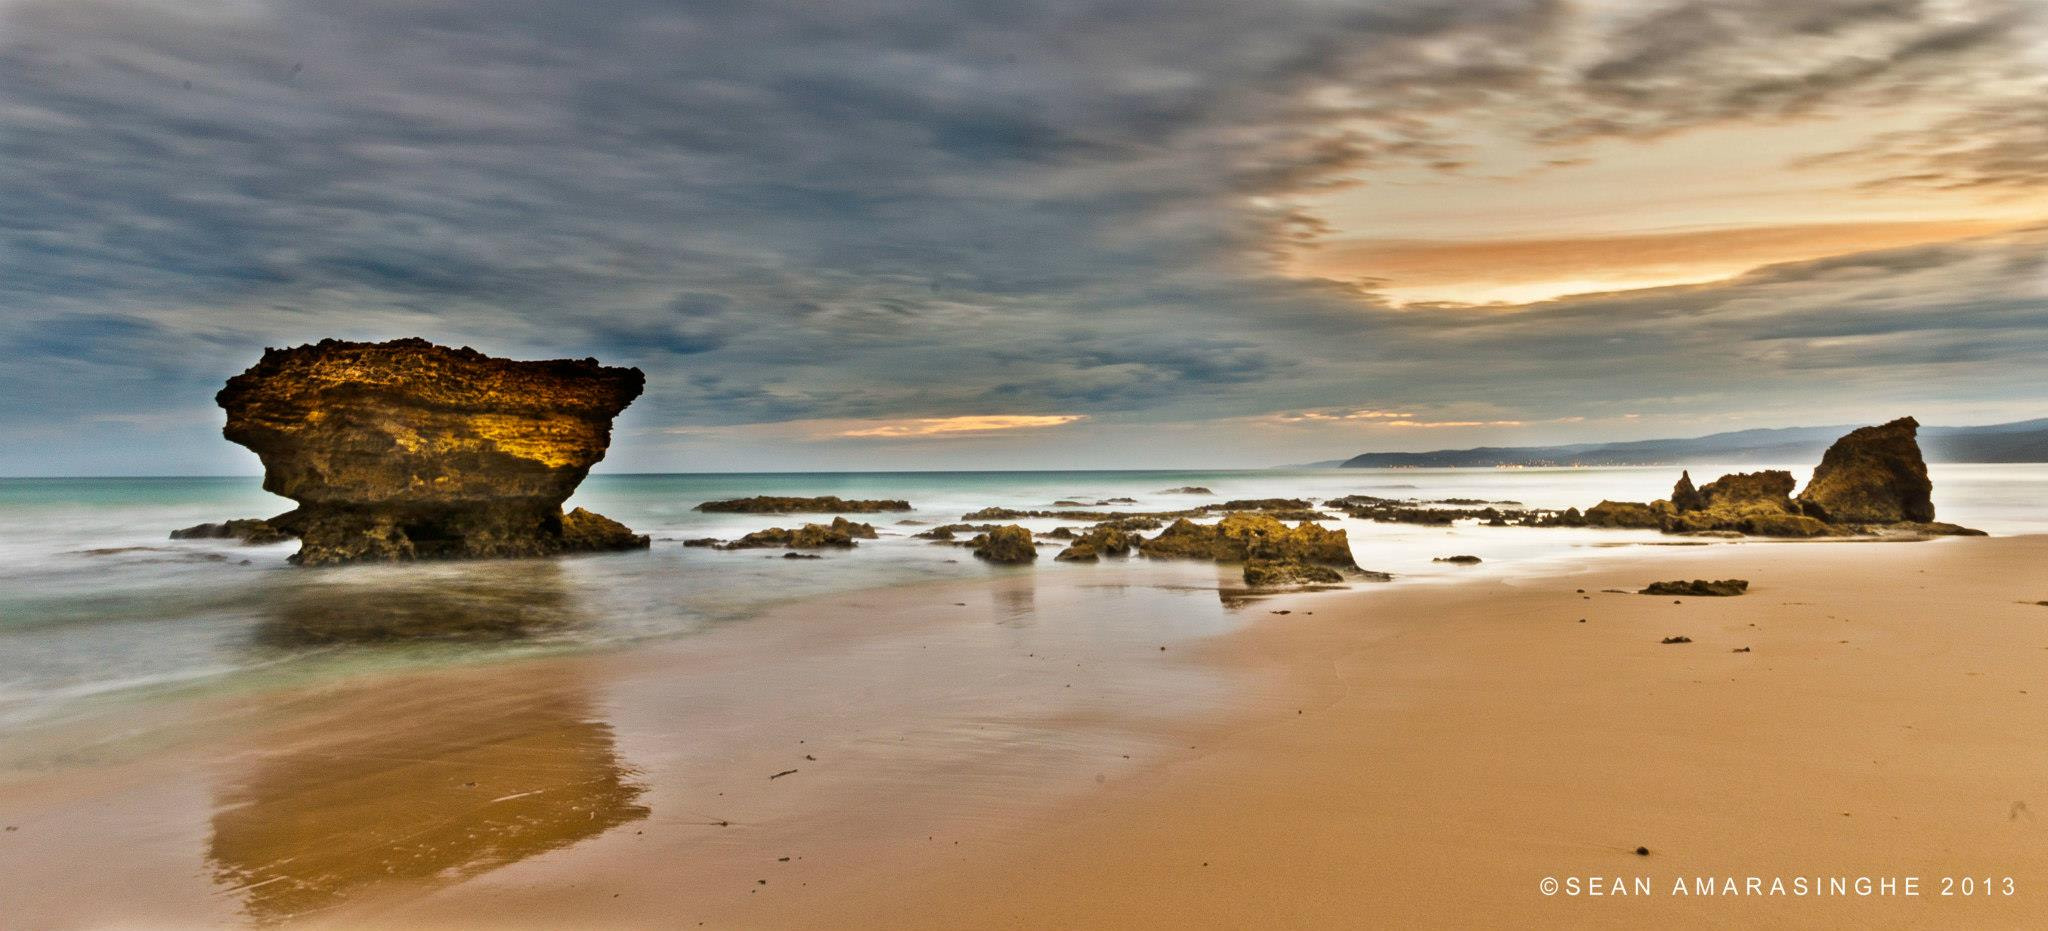 Photograph Aireys Inlet  by Sean Amarasinghe on 500px